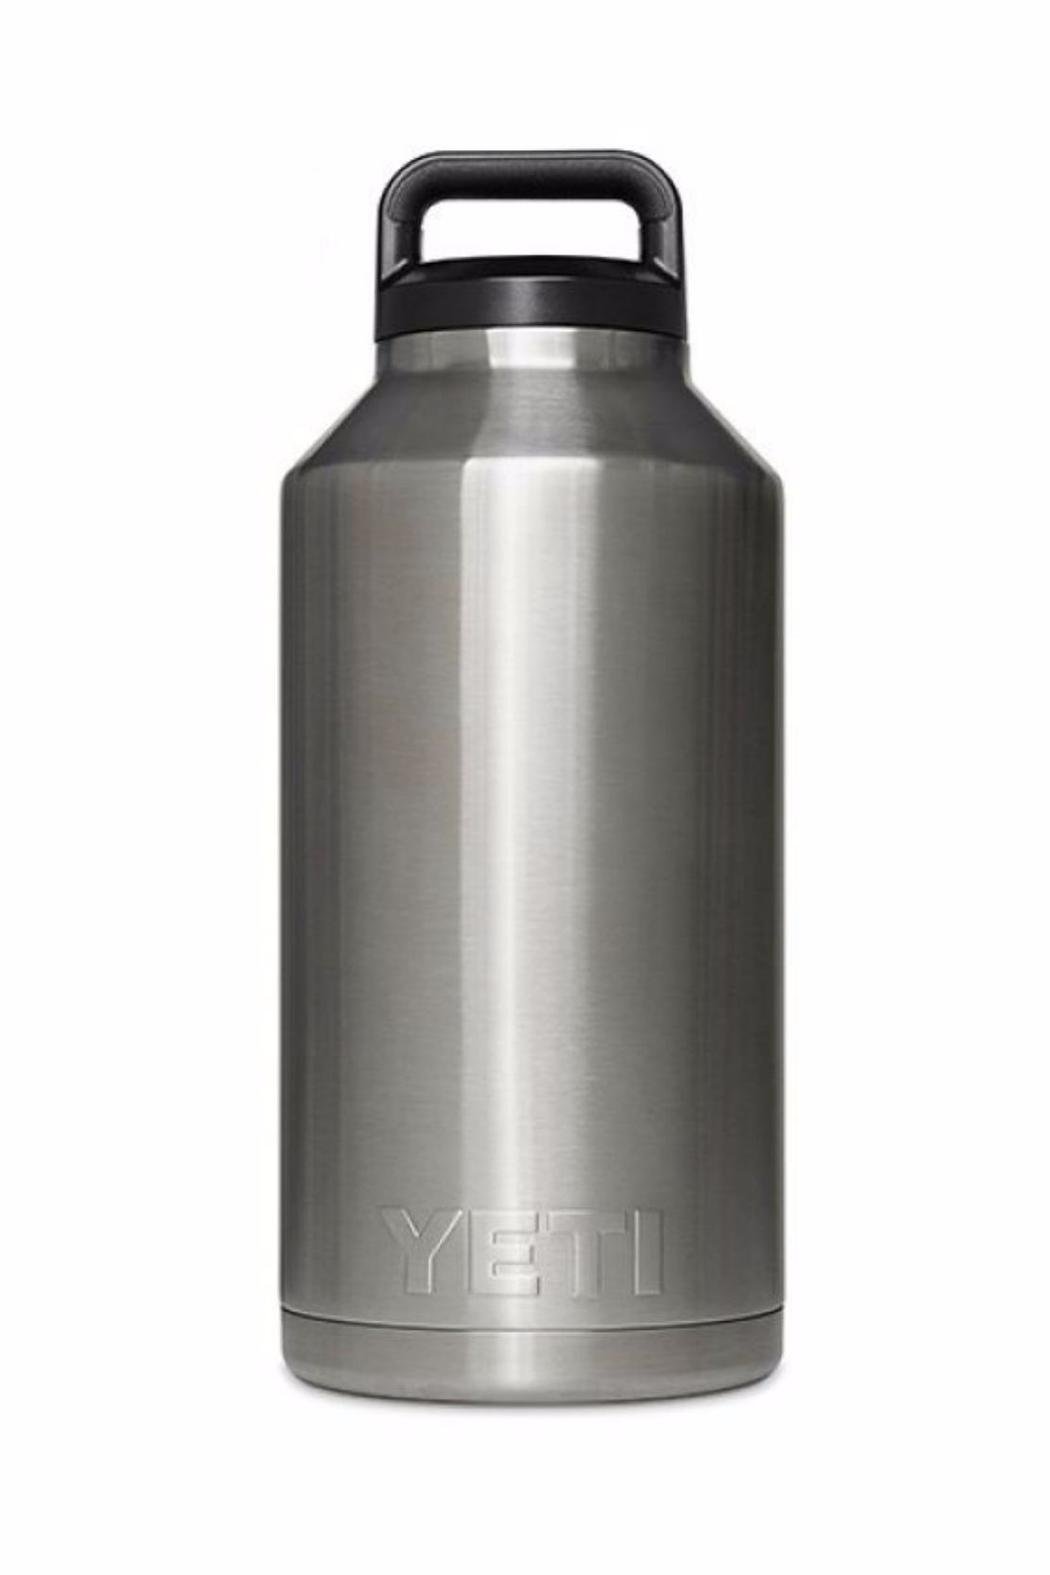 YETI Coolers Stainless Steel Bottle from Alabama by ...